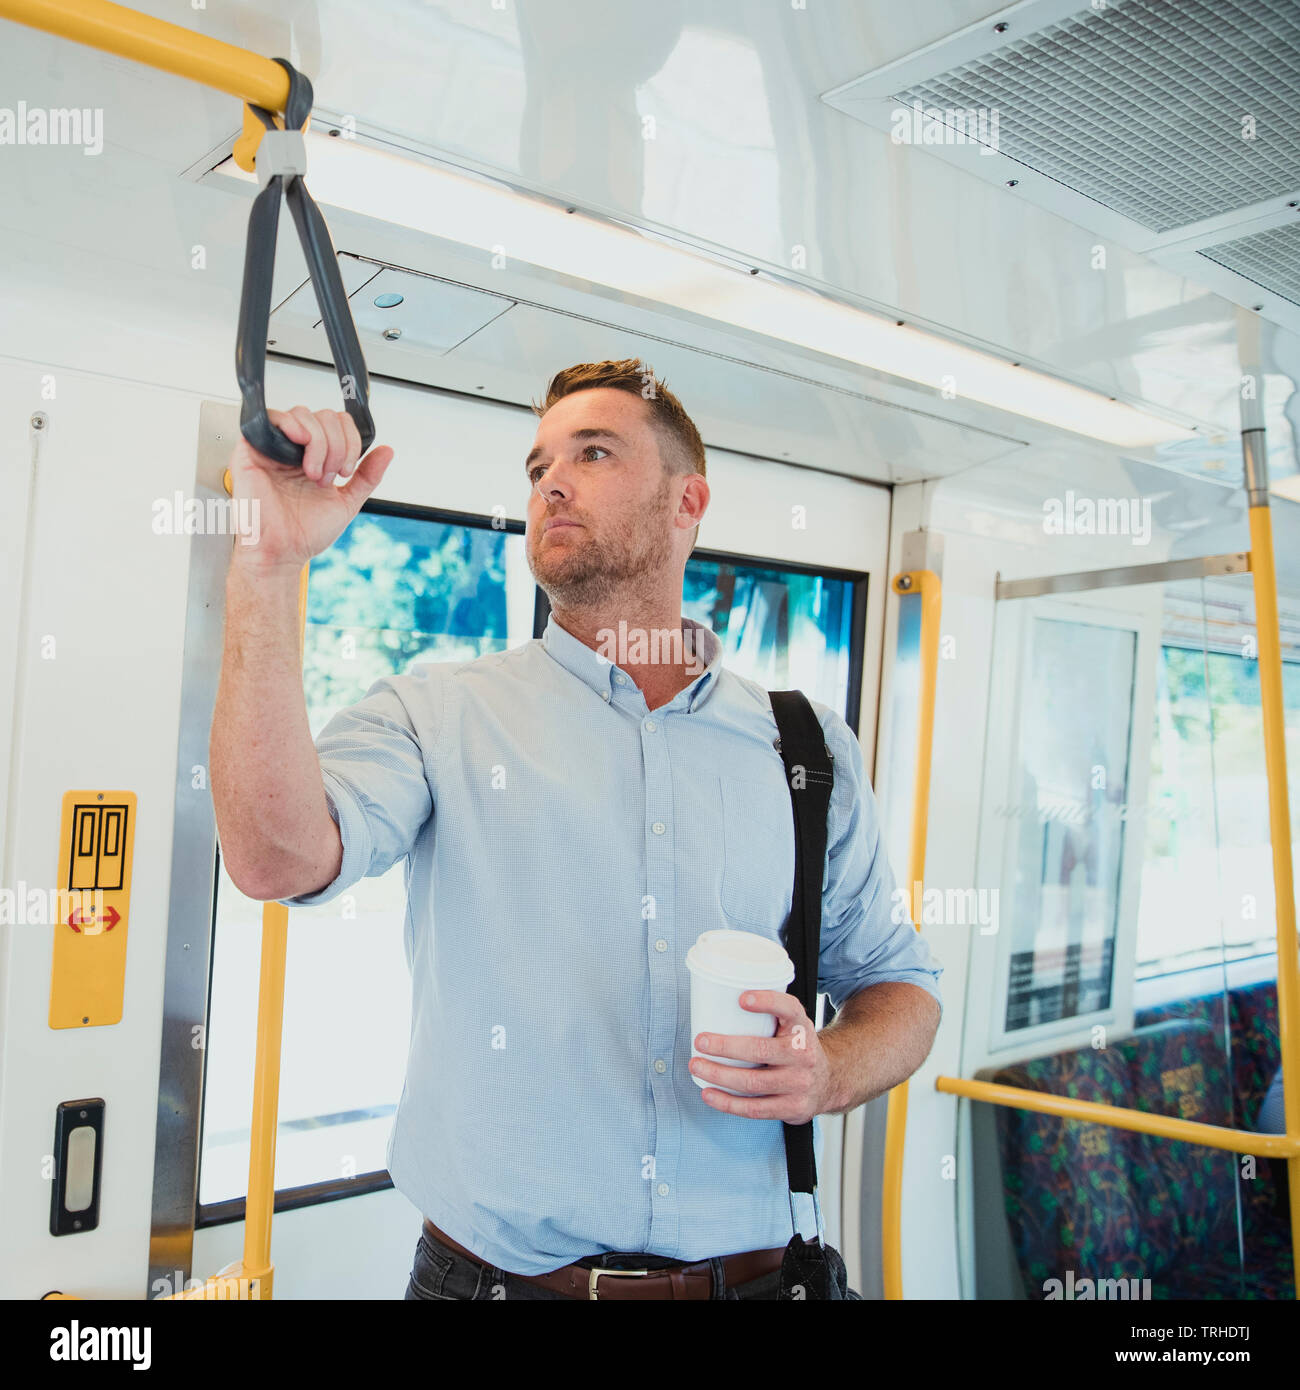 A side-view shot of a mid-adult businessman standing on a train commuting to work, he is holding a cup of coffee. - Stock Image